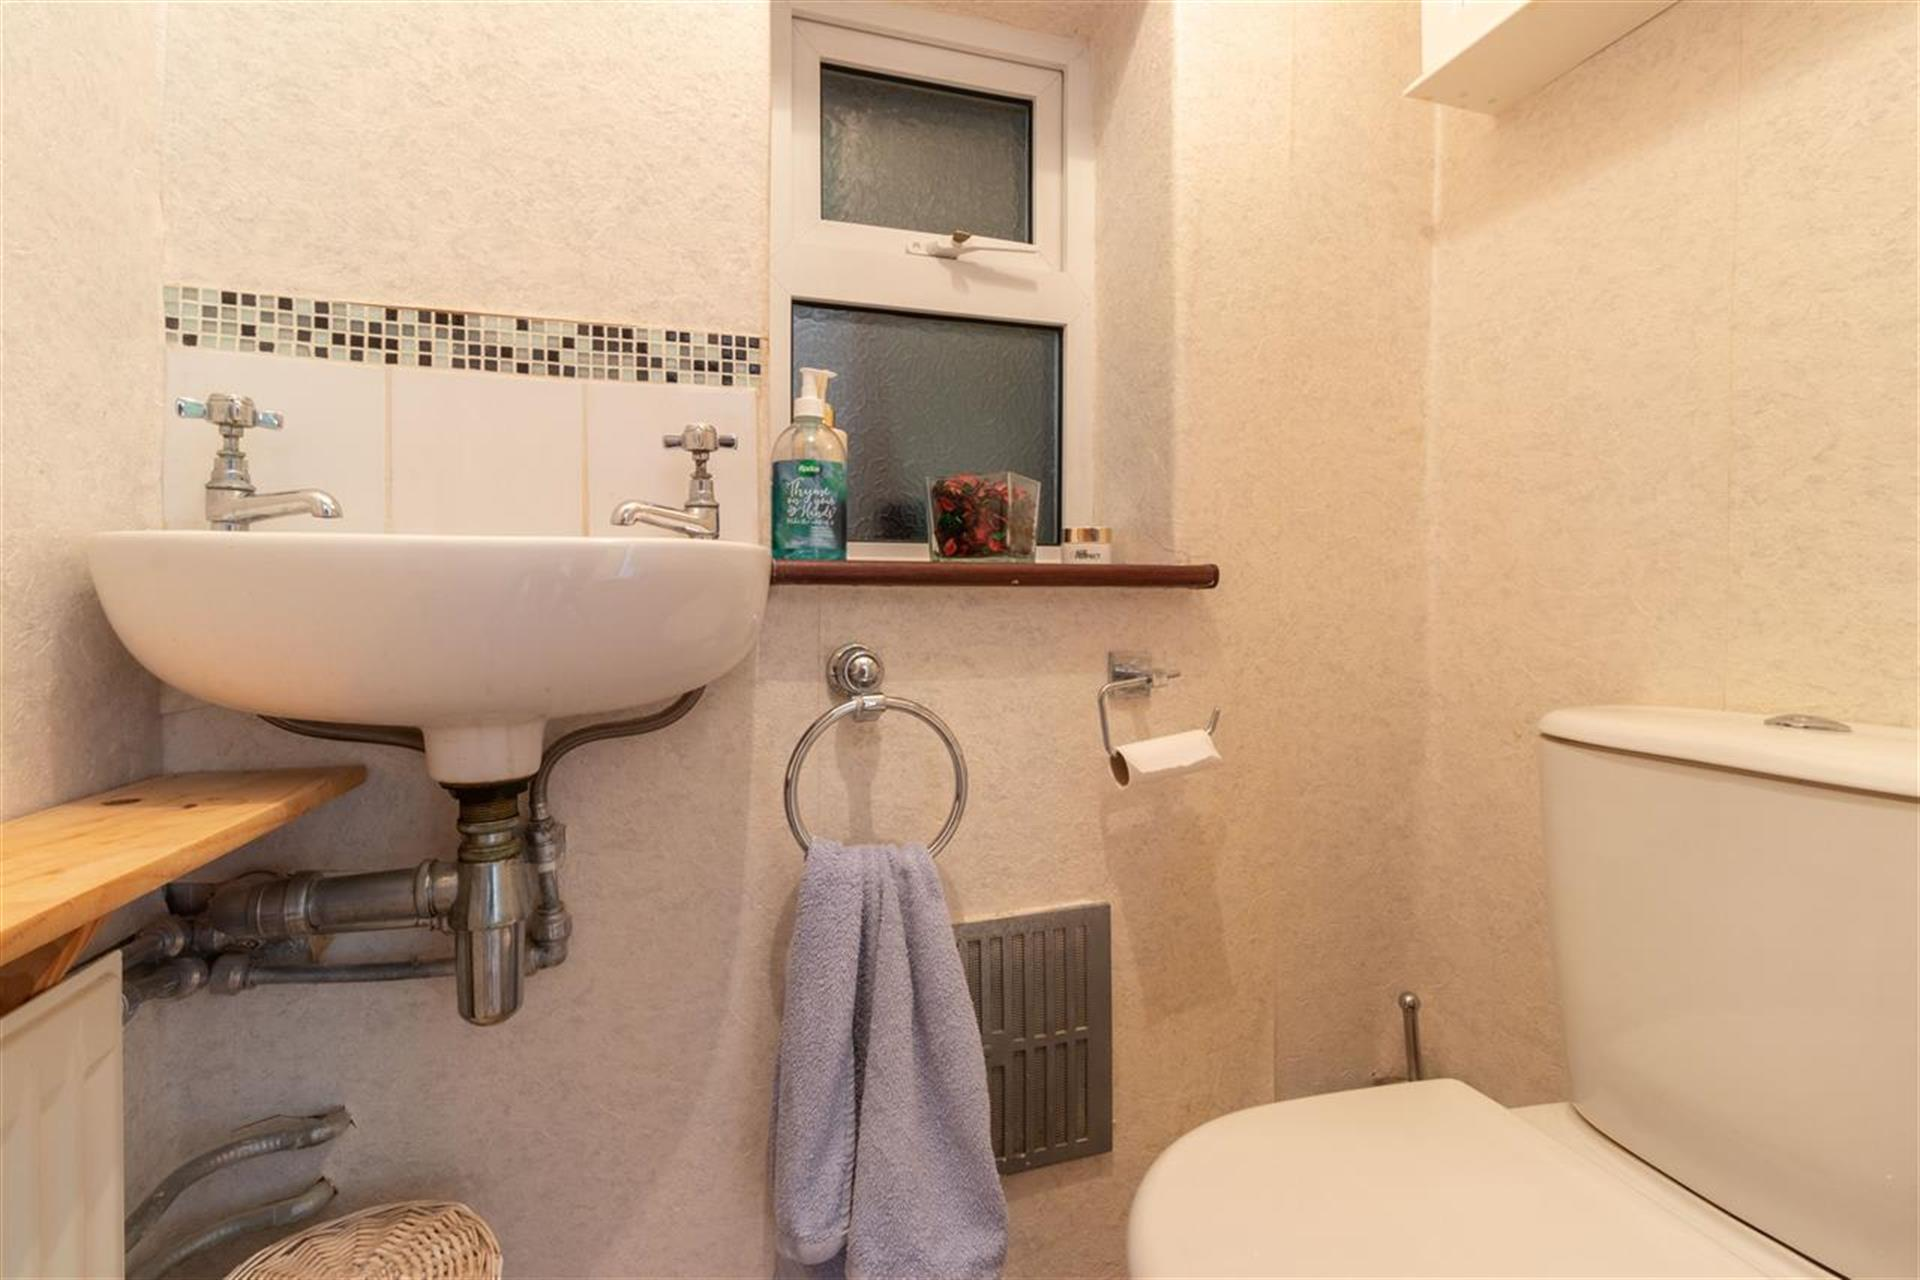 4 Bedroom Semi-detached House For Sale - Guest W/C